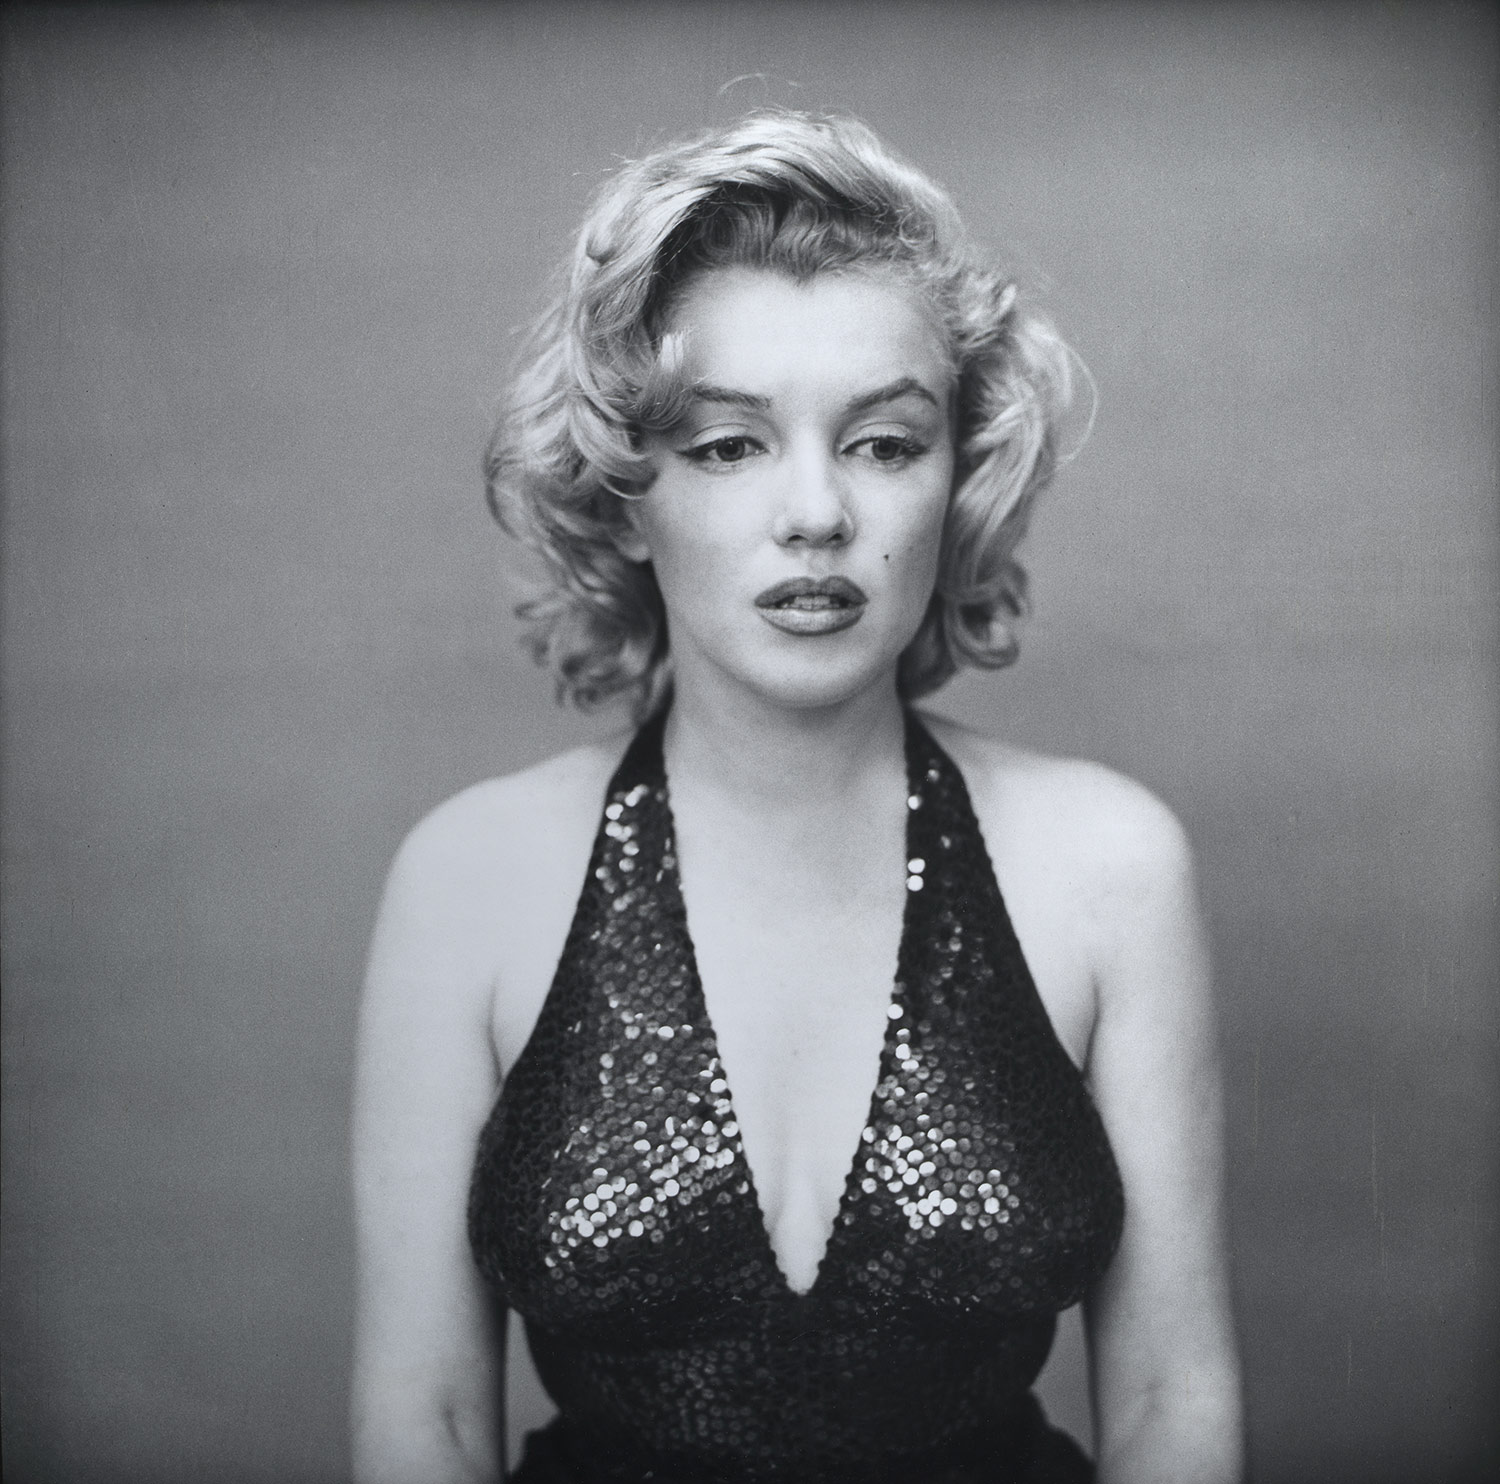 Richard Avedon- piture taken of Marilyn Monroe